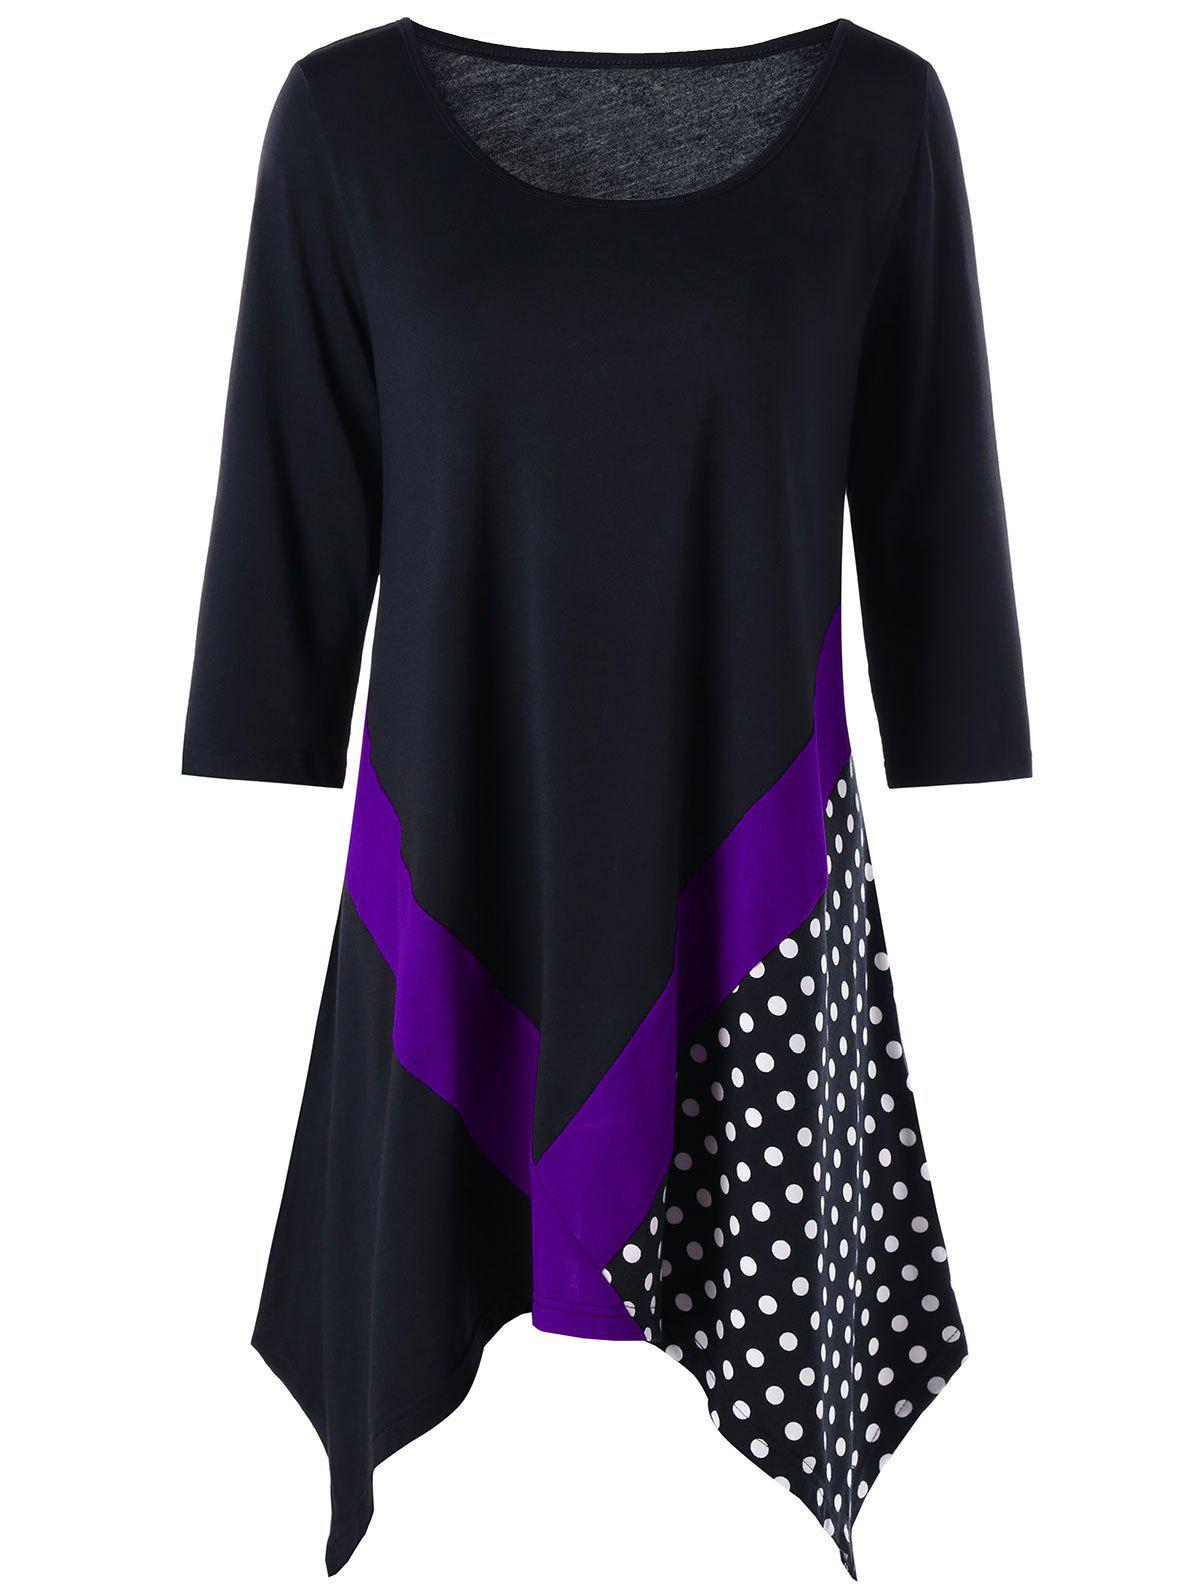 Plus Size Polka Dot Trim Tunic T-shirt - BLACK/PURPLE XL